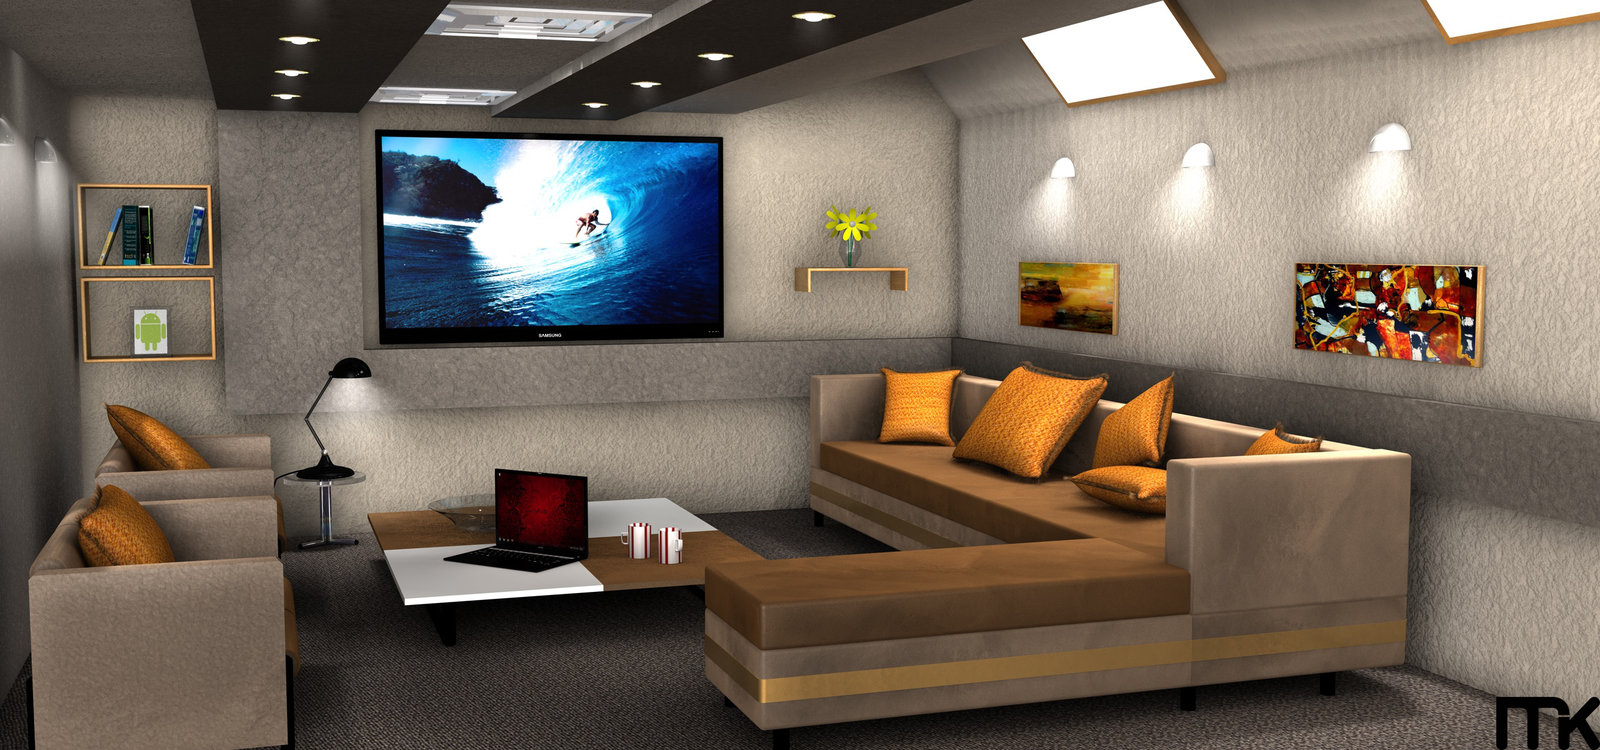 Fancy Livingroom : Living Room Theater Ideas Wall For Fun Boca Raton Buy with regard to Living Room Theater Boca Raton Florida